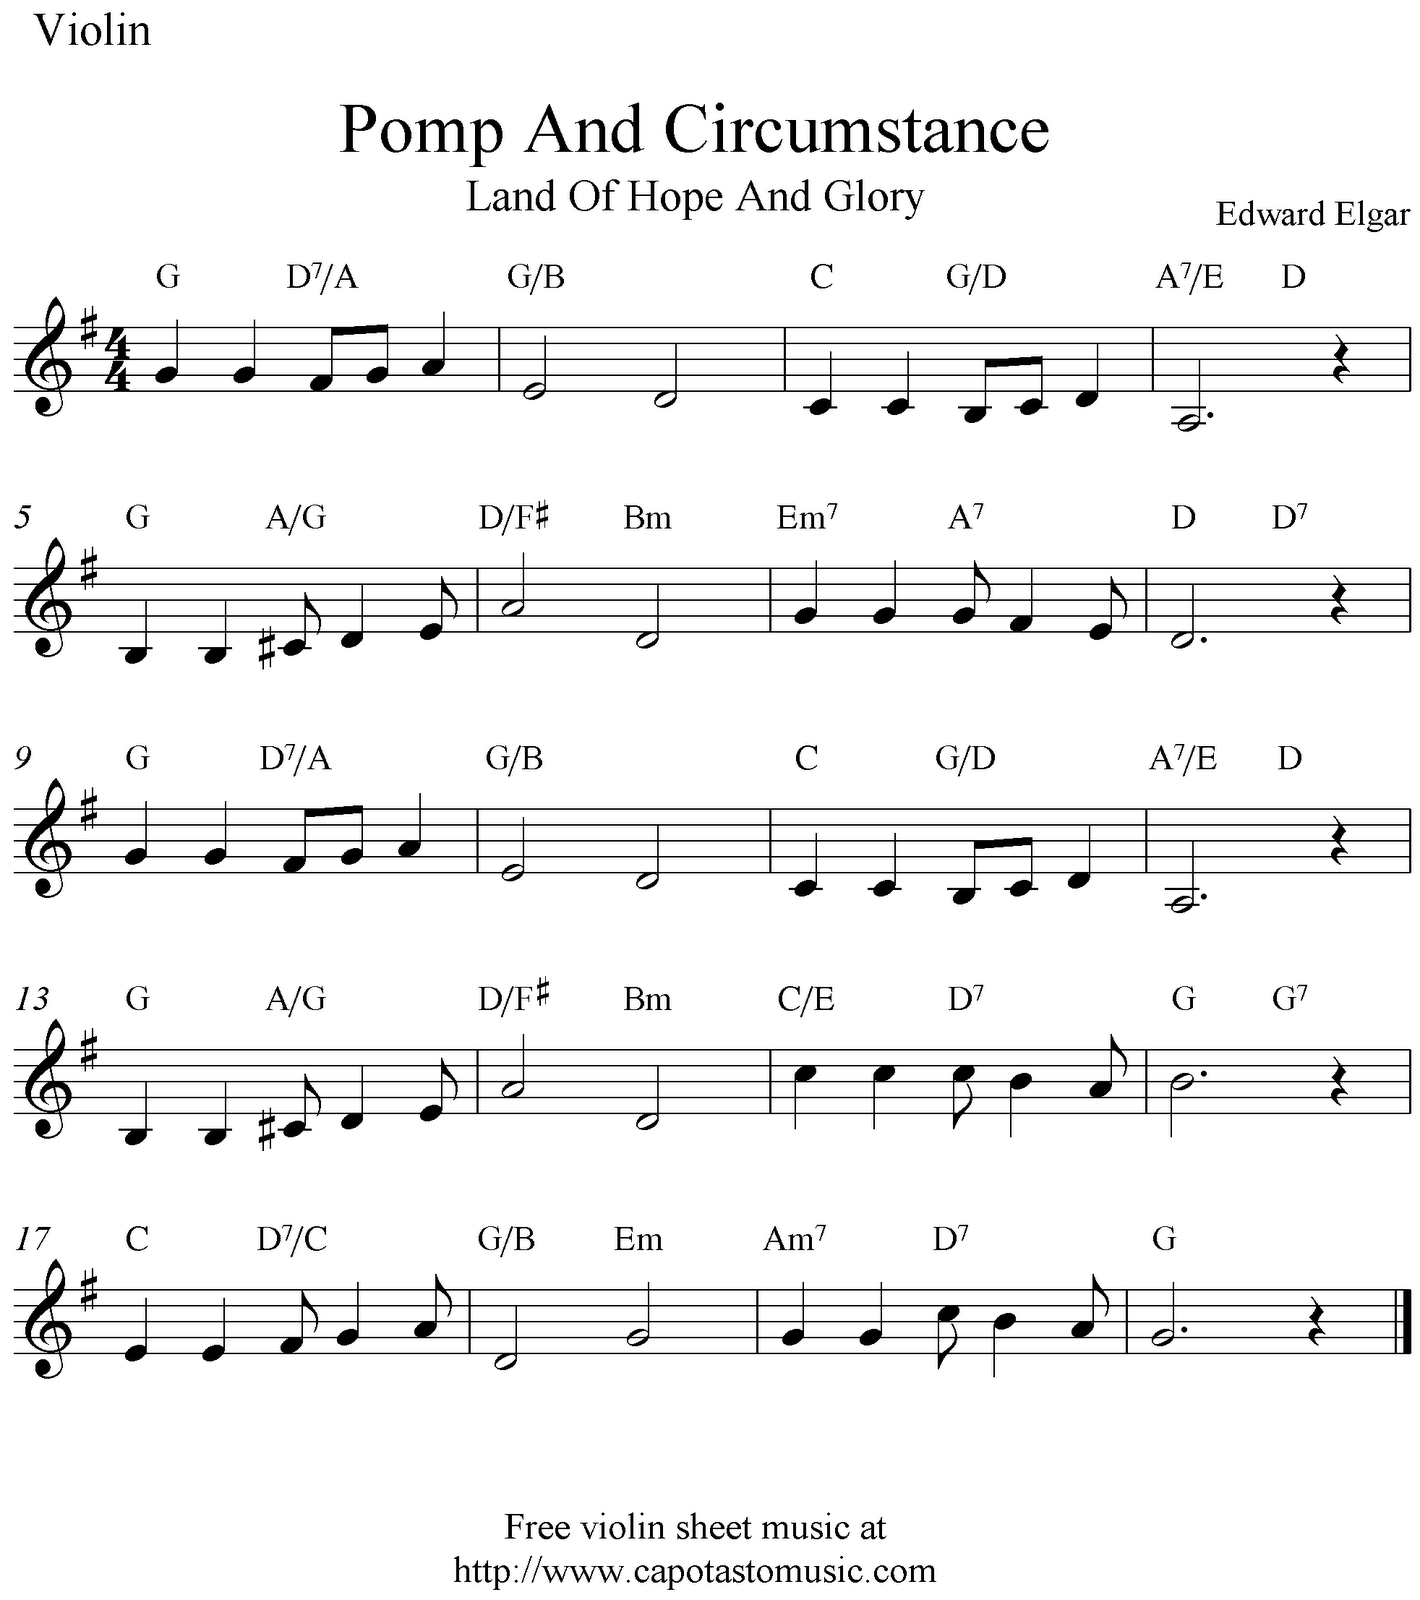 Free Sheet Music Scores: Pomp And Circumstance (Land Of Hope And - Free Printable Sheet Music Pomp And Circumstance